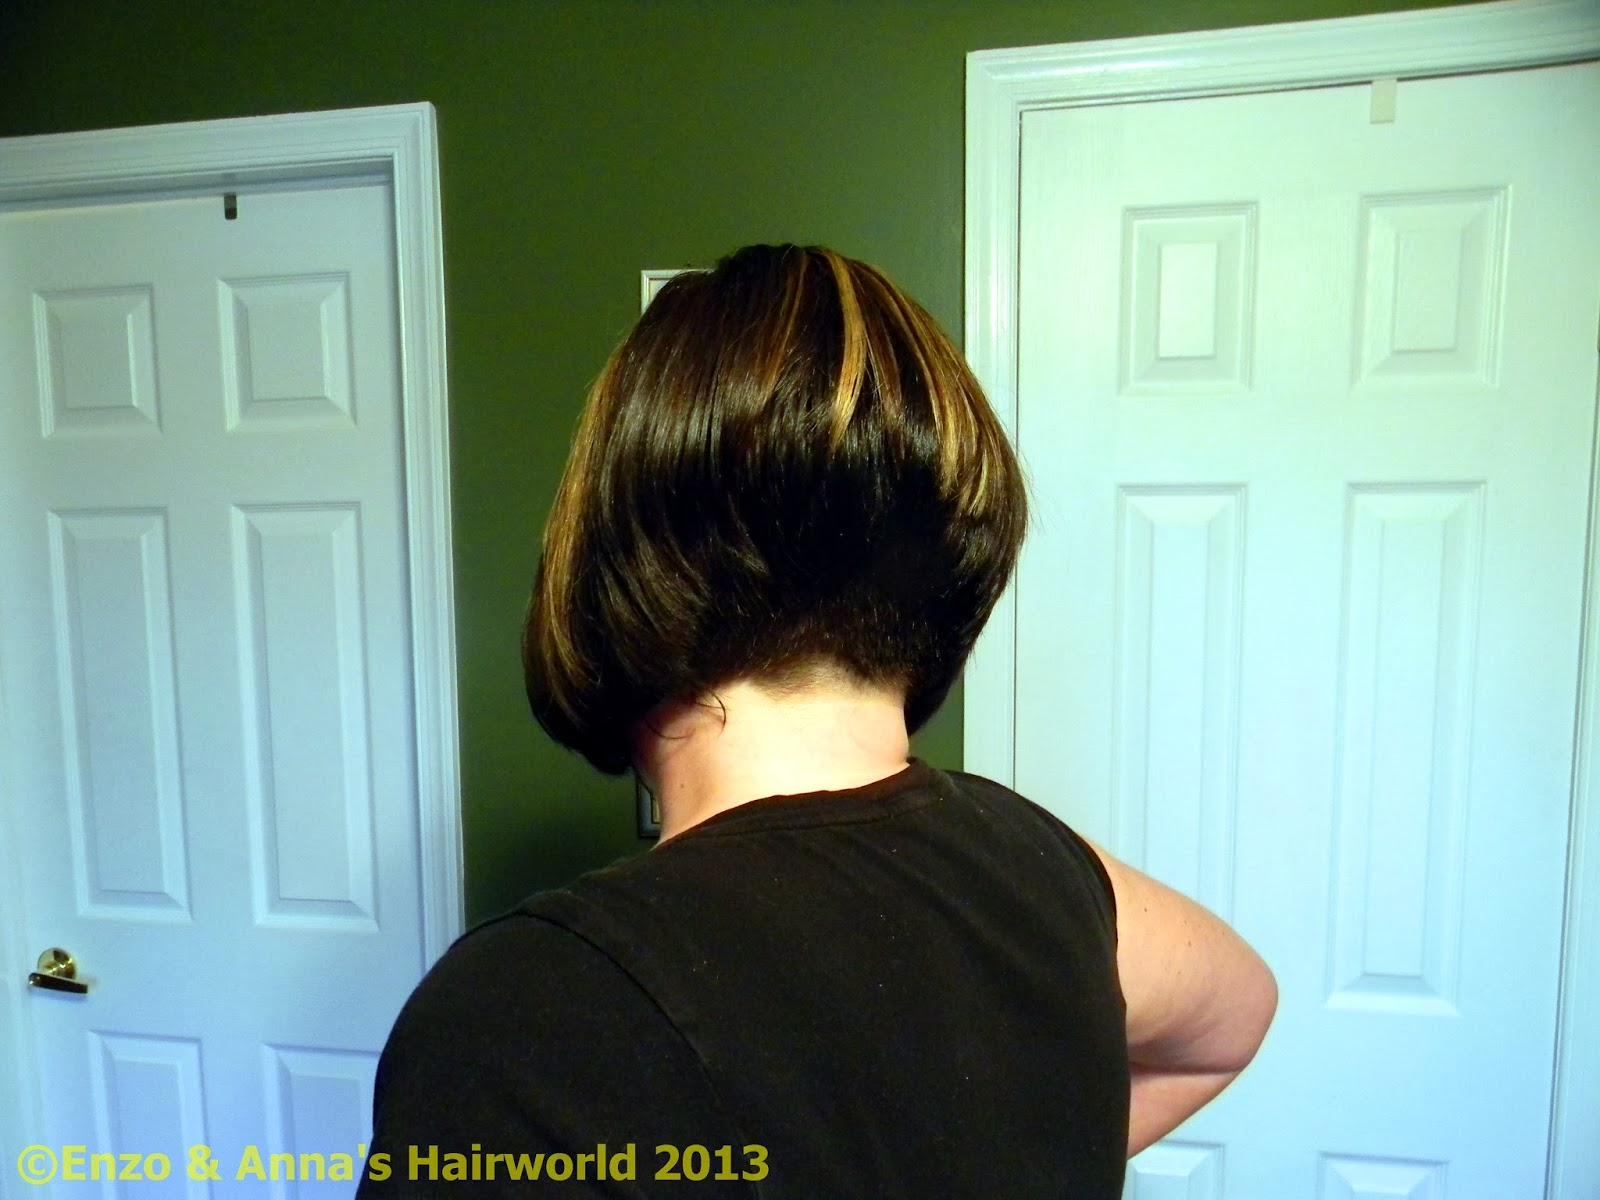 month later in March, I went back to the salon, not for a cut, but